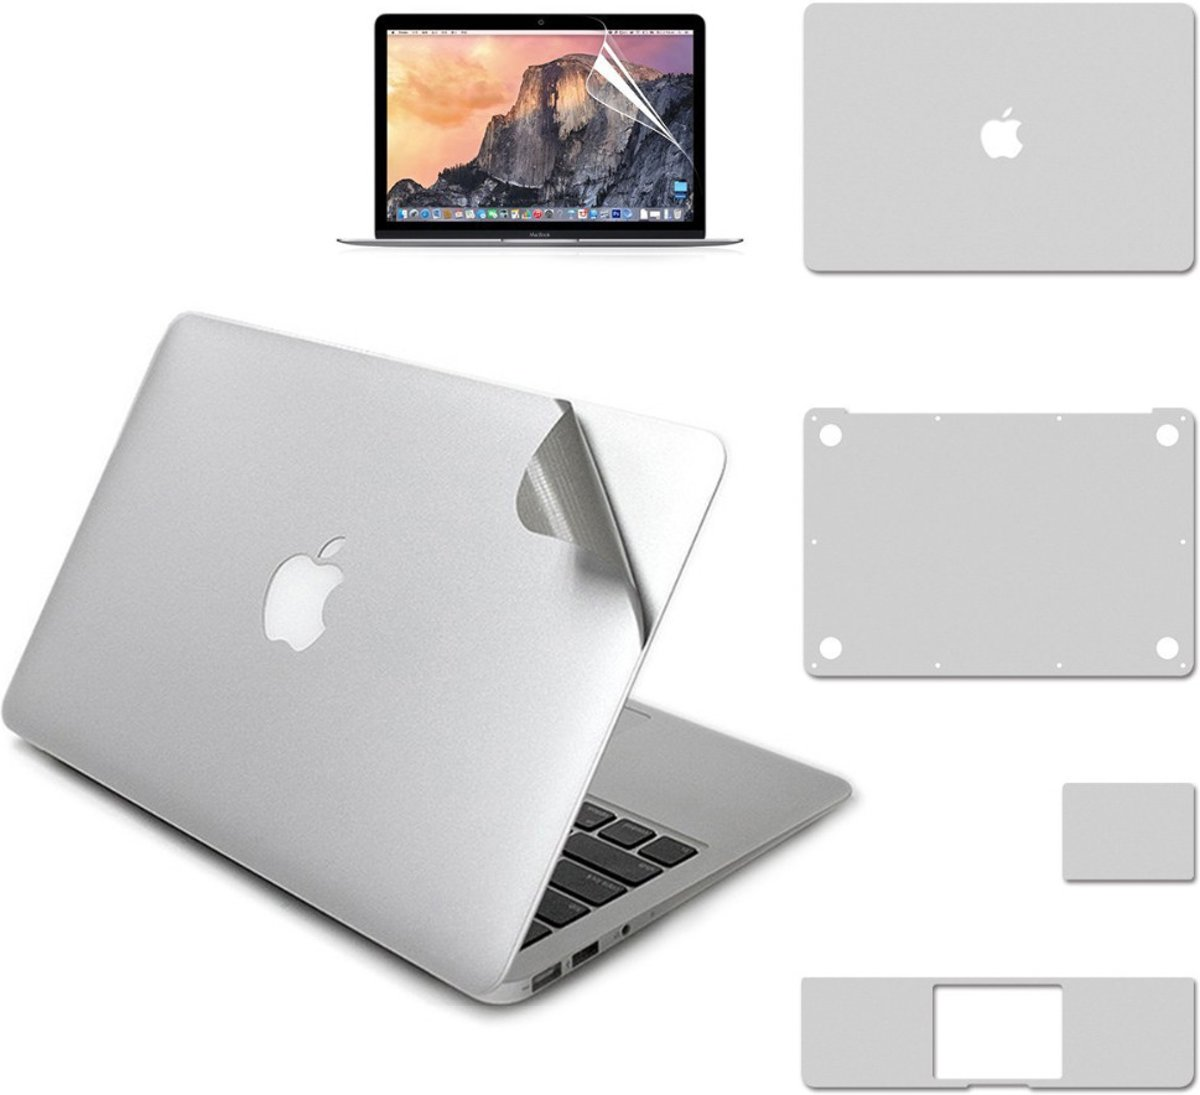 5-in-1 Nano Body Guard Anti Scratch 3M Protector voor Apple MacBook Pro 13 inch Retina A1502 / A1425 - Zilver